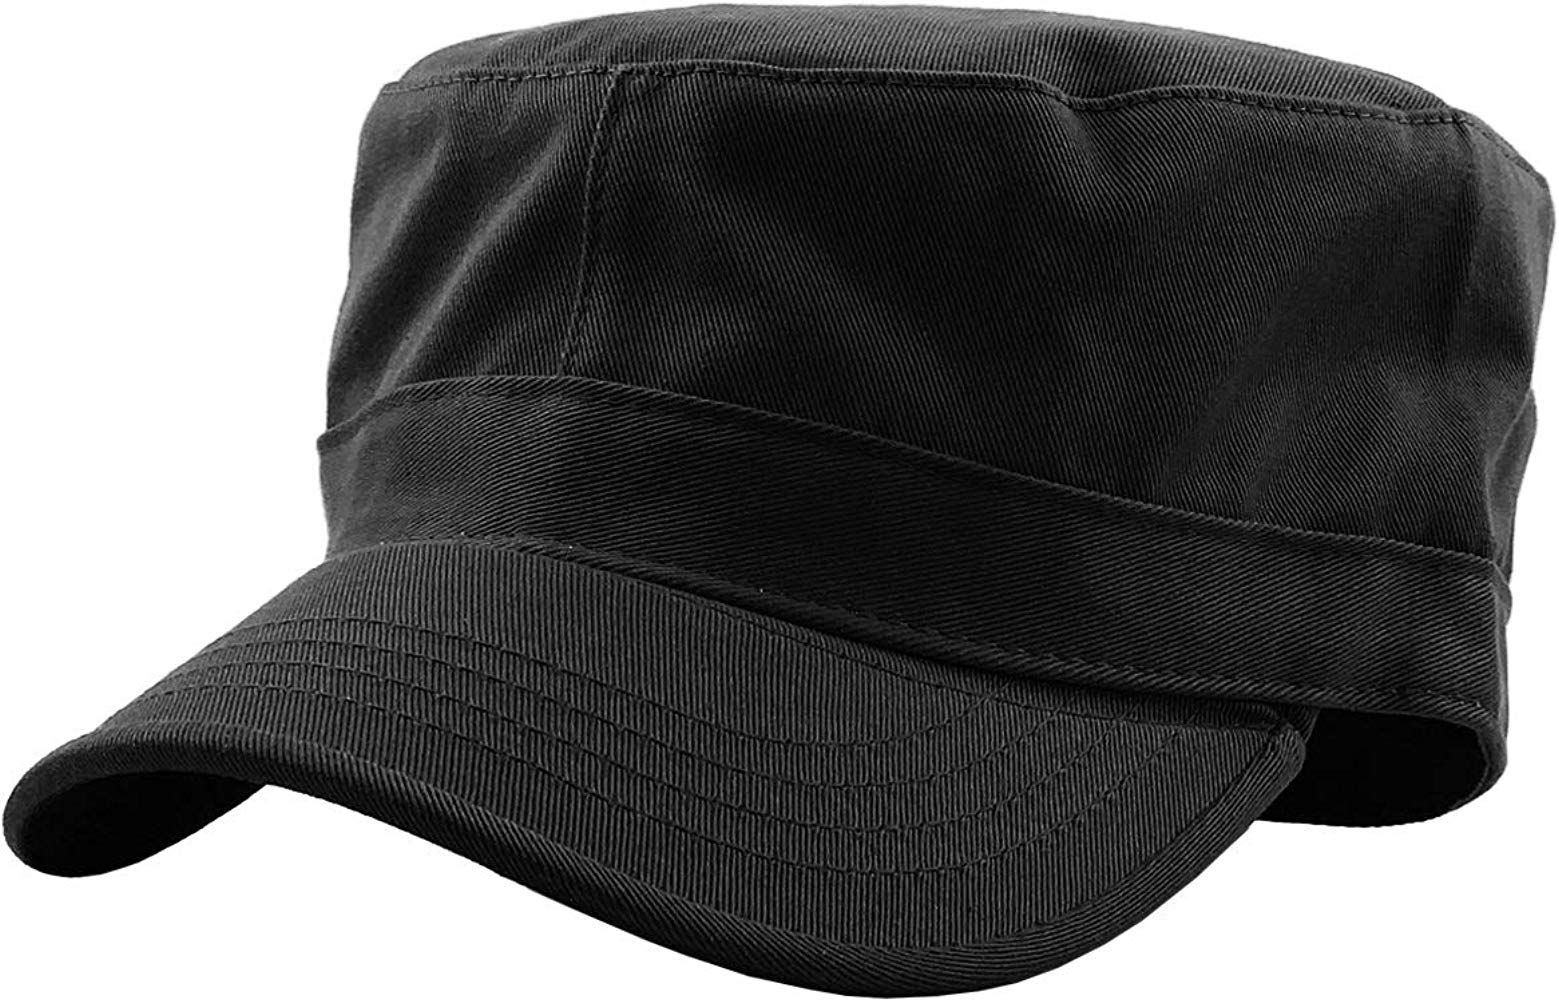 Kbk 1464 Blk M Cadet Army Cap Basic Everyday Military Style Hat At Amazon Men S Clothing Store Hat Fashion Military Fashion Hats For Short Hair